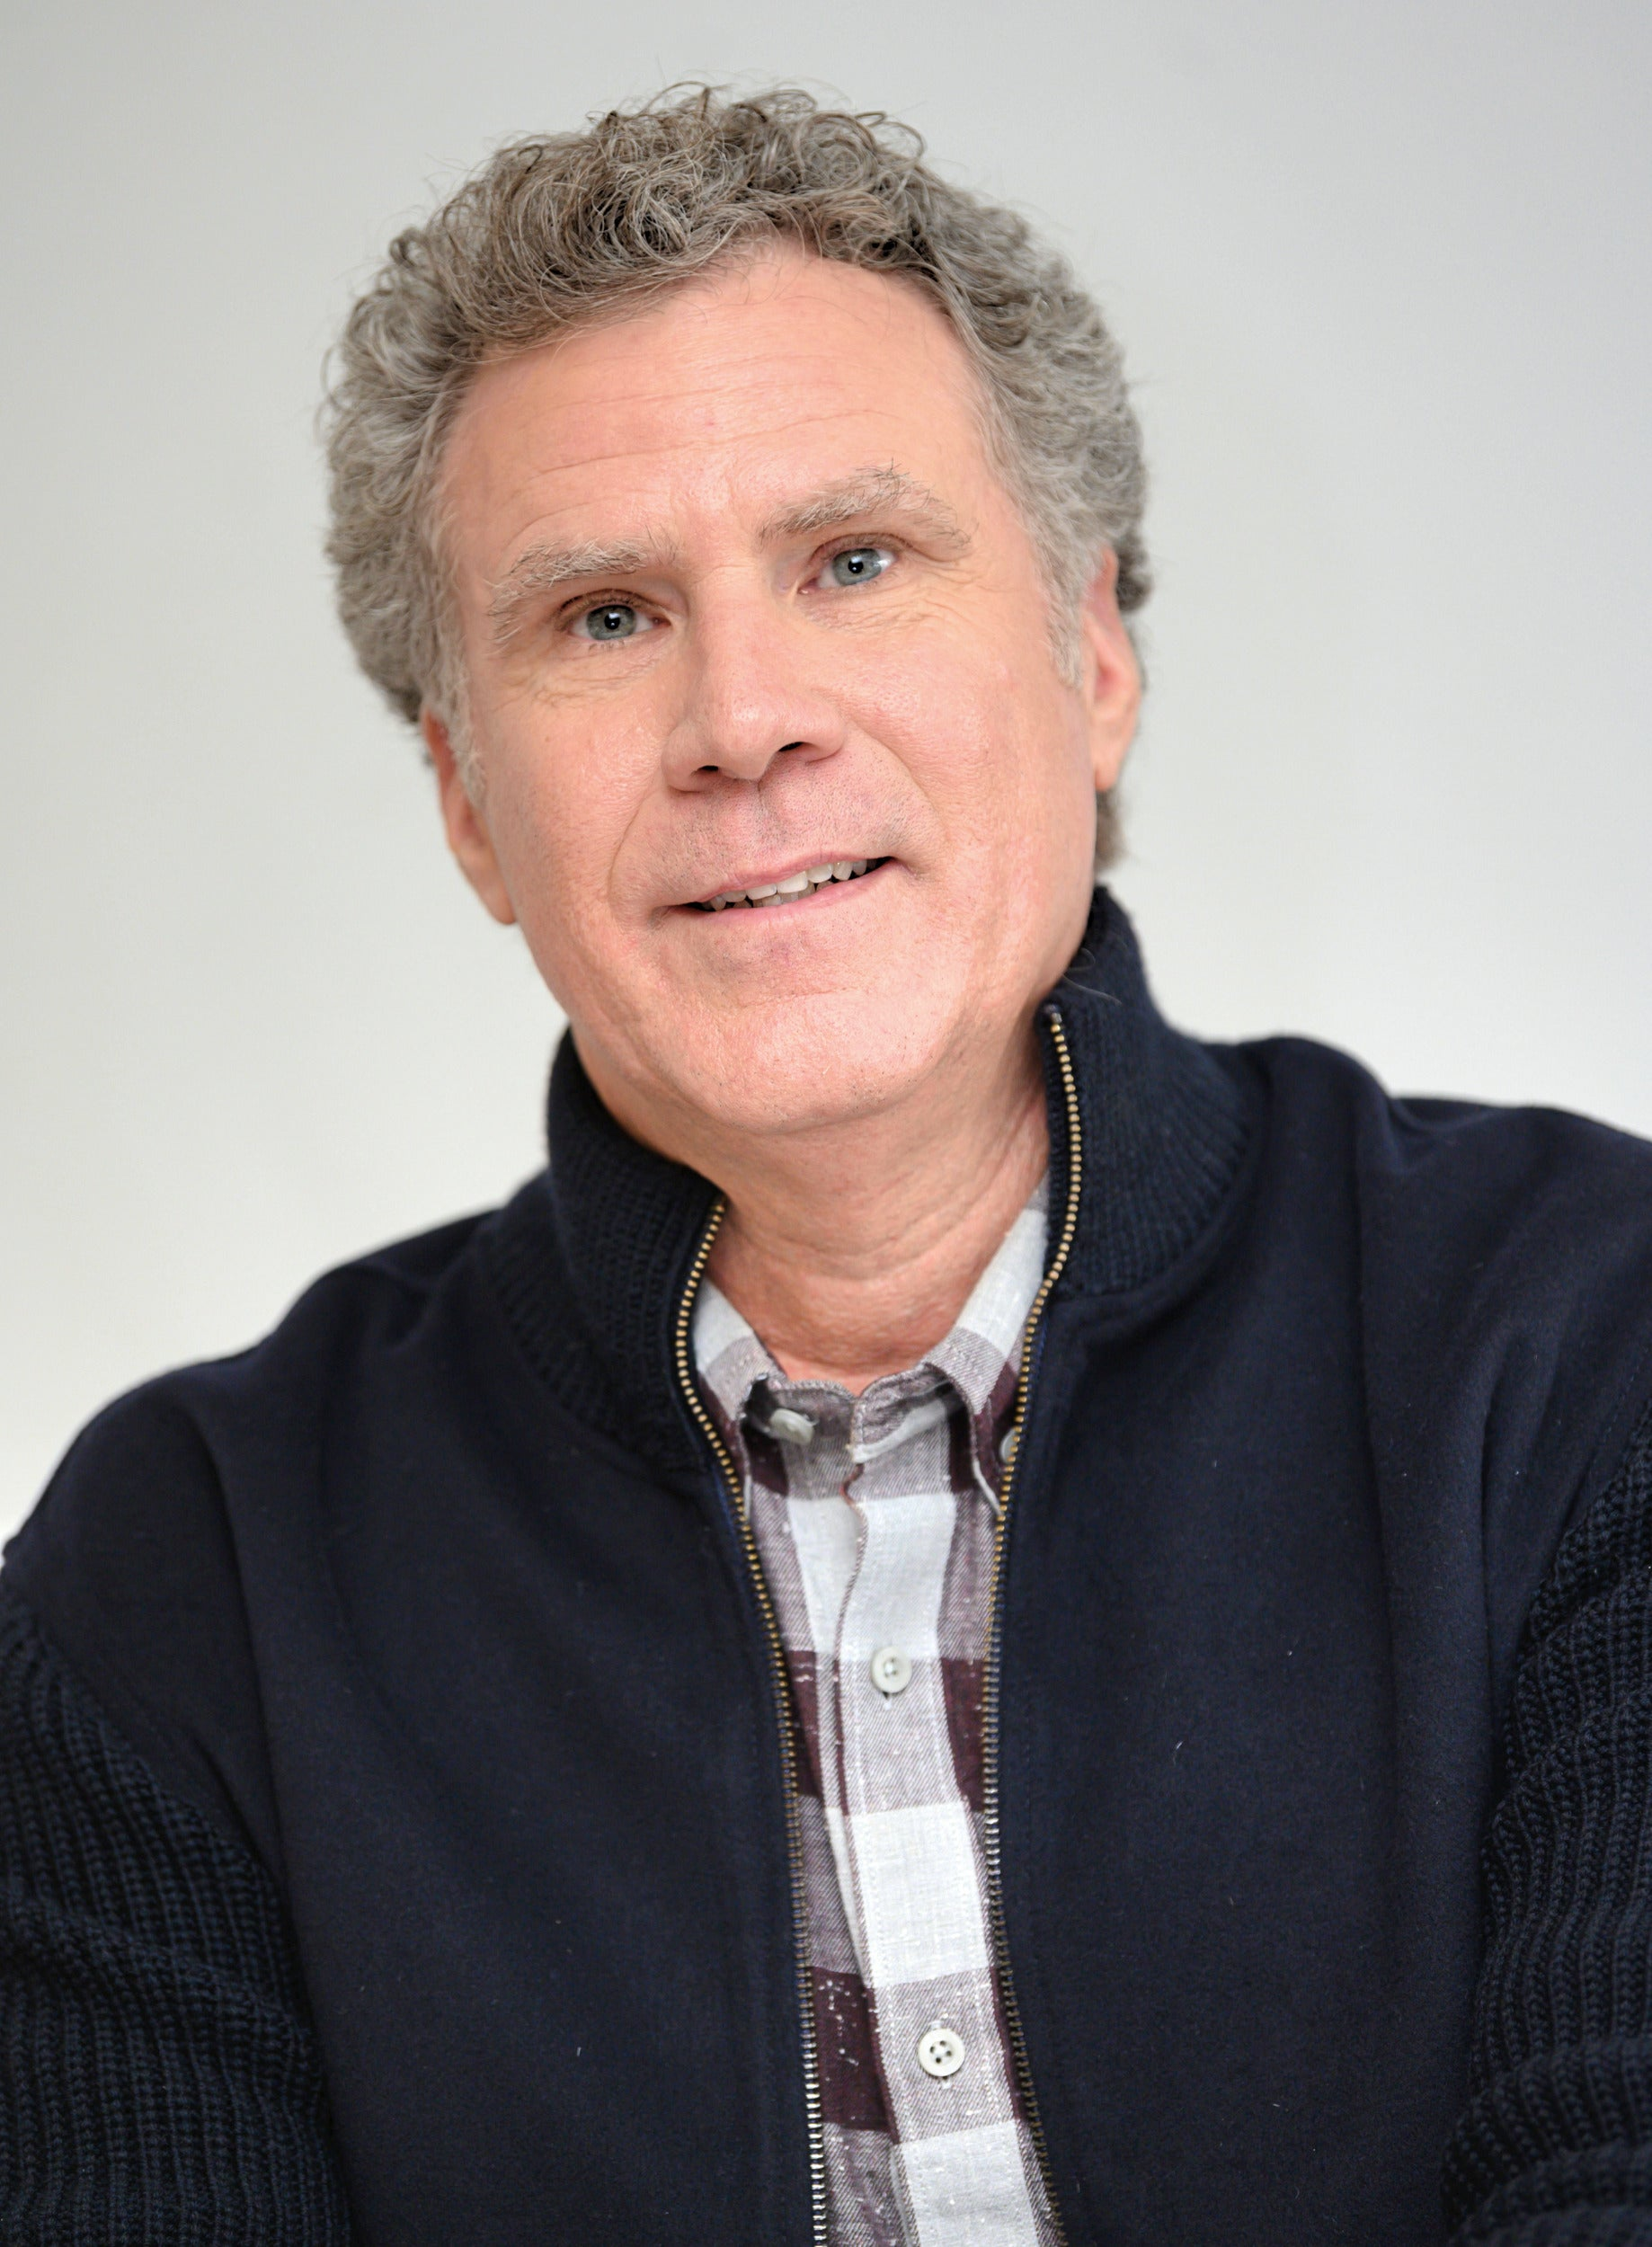 Actor and producer Will Ferrell, Golden Globe nominee